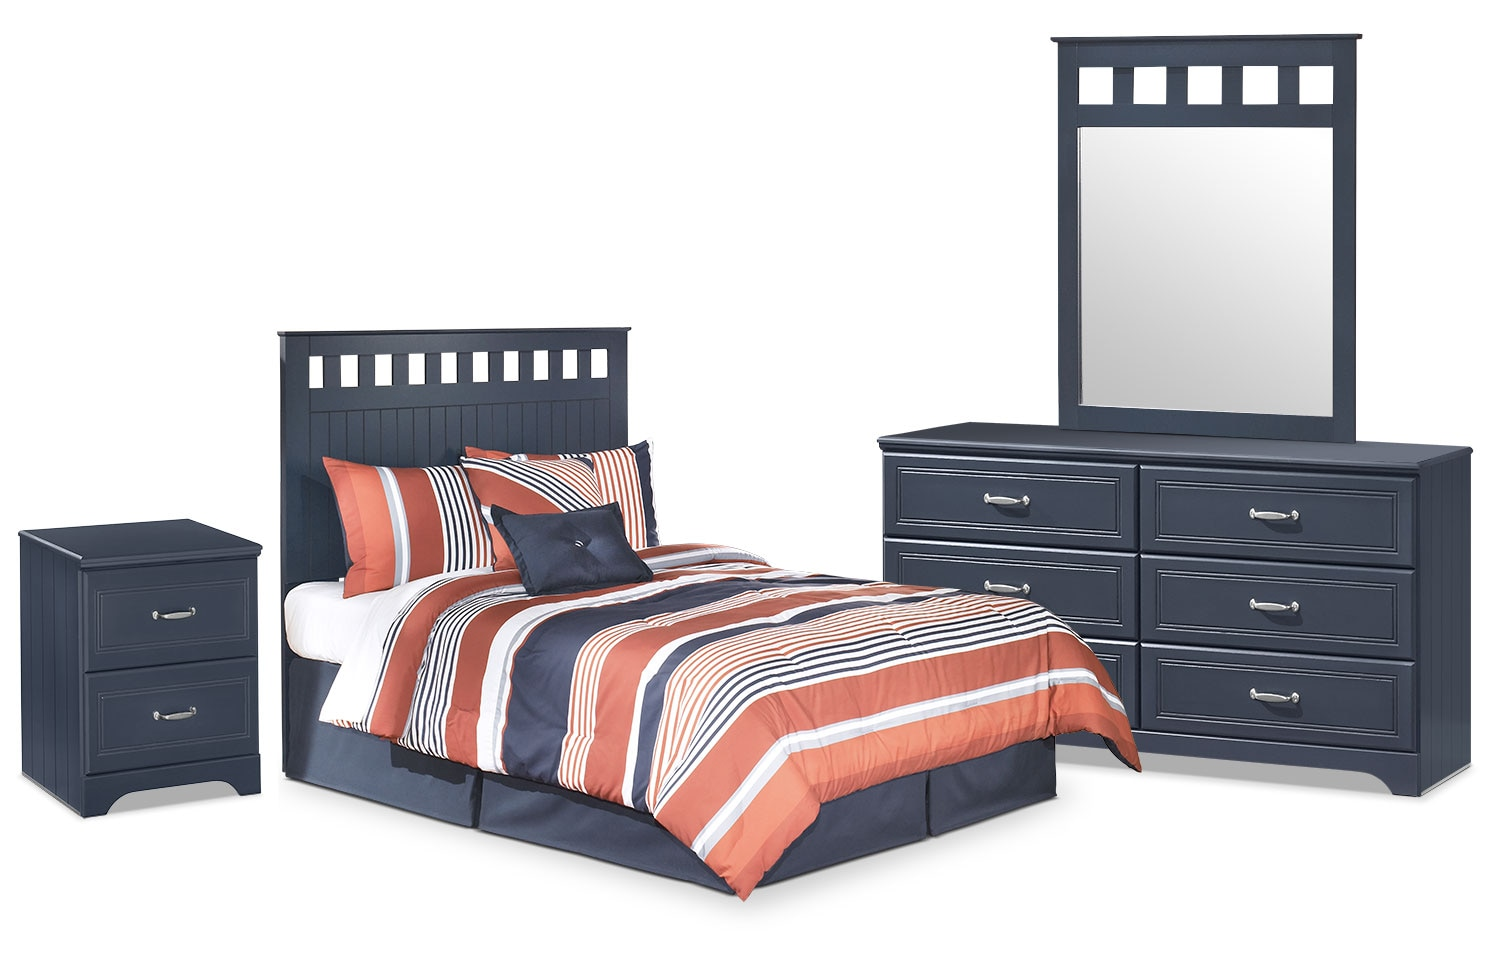 Kids Furniture - Leo 4-Piece Full Panel Headboard Package